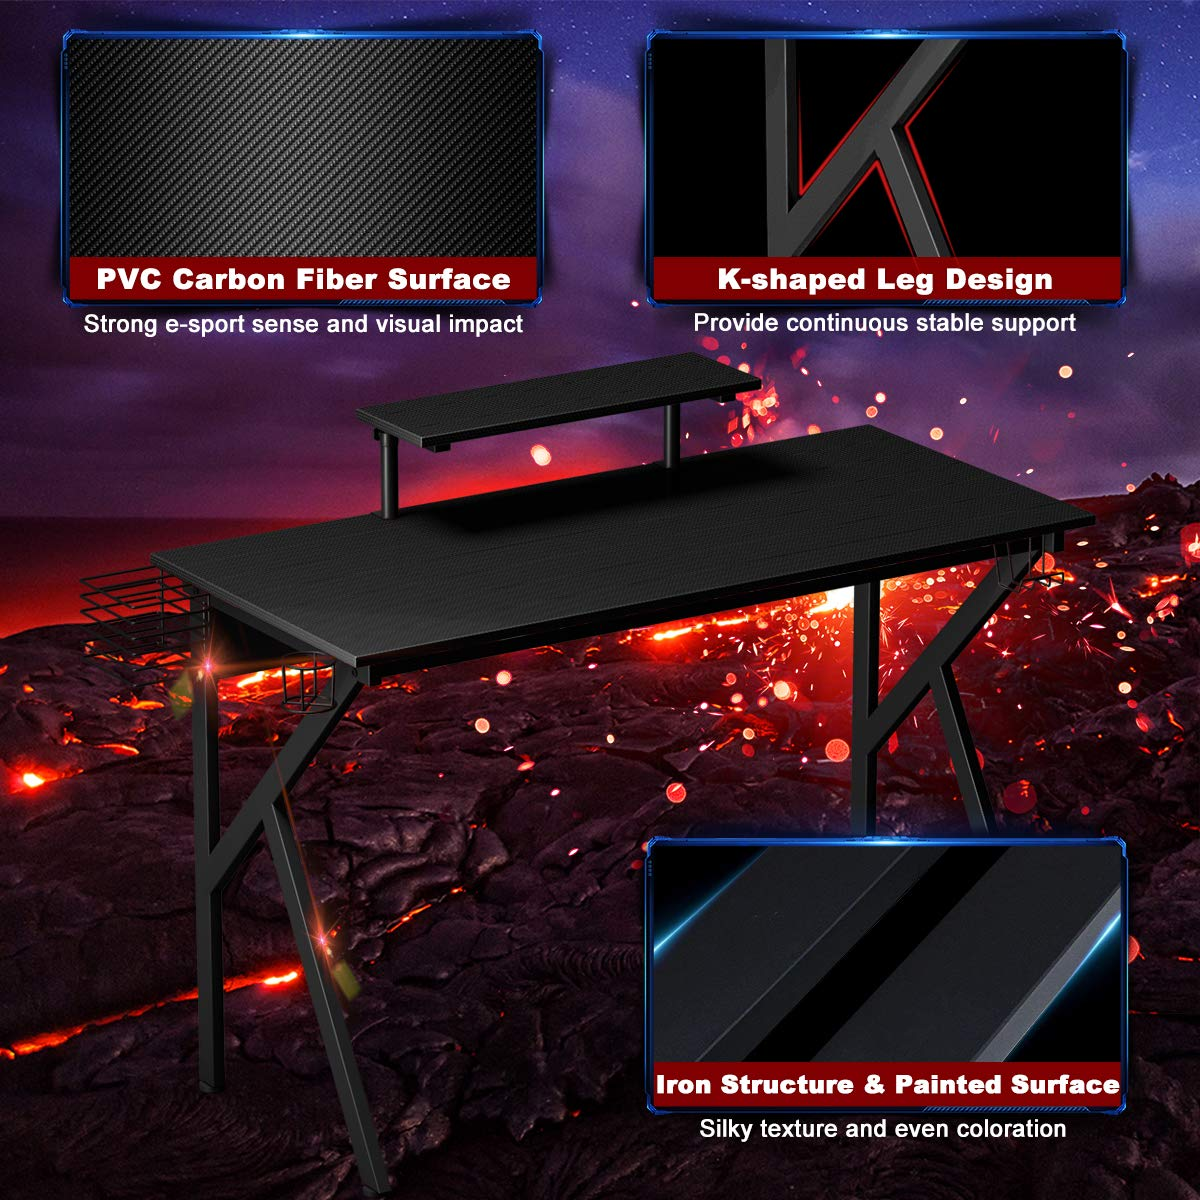 K-Shaped Sport Table Lx W x H 47.5X22X29.5 Ergonomic Racing E-Sports Gamers Computer Desk PC Laptop Table/for Pro Gamers Gaming Workstation with Cup /& Headphone Holder Tangkula Gaming Desk